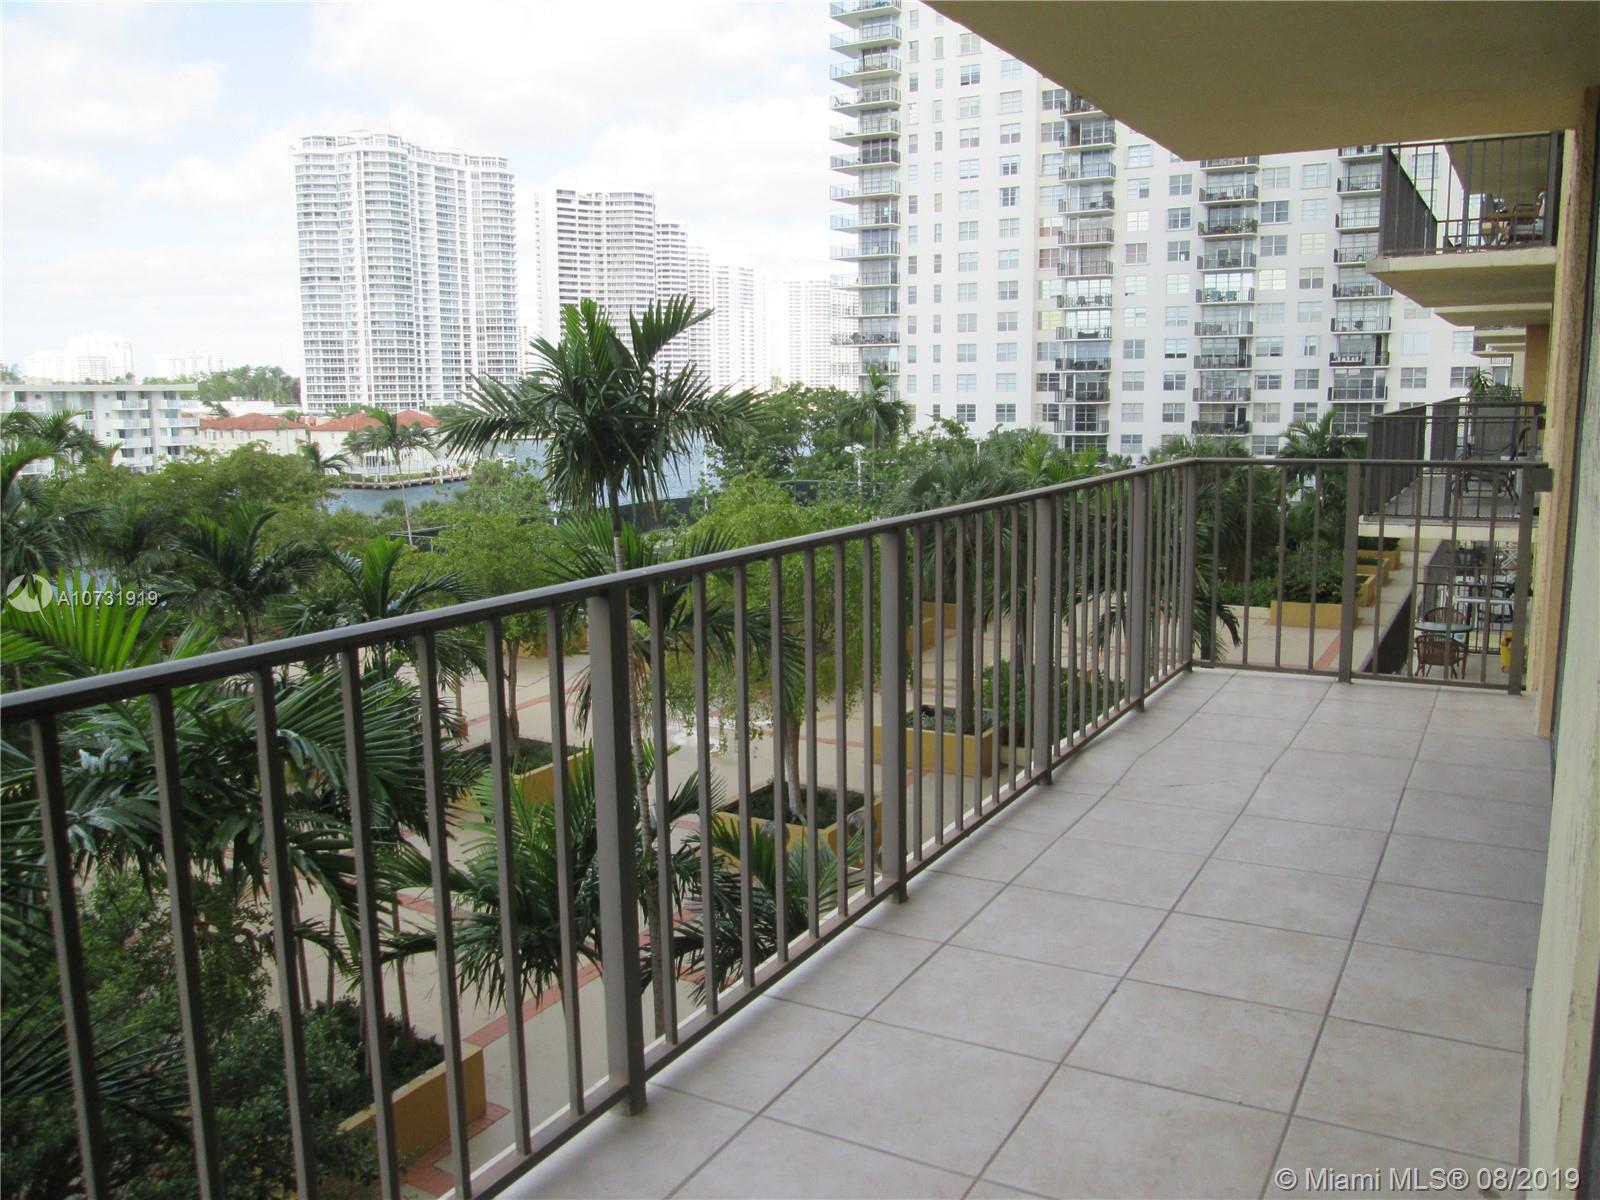 2/2 convertible in the most desirable Winston Towers. Beautiful view of the Intracoastal. Nice new k